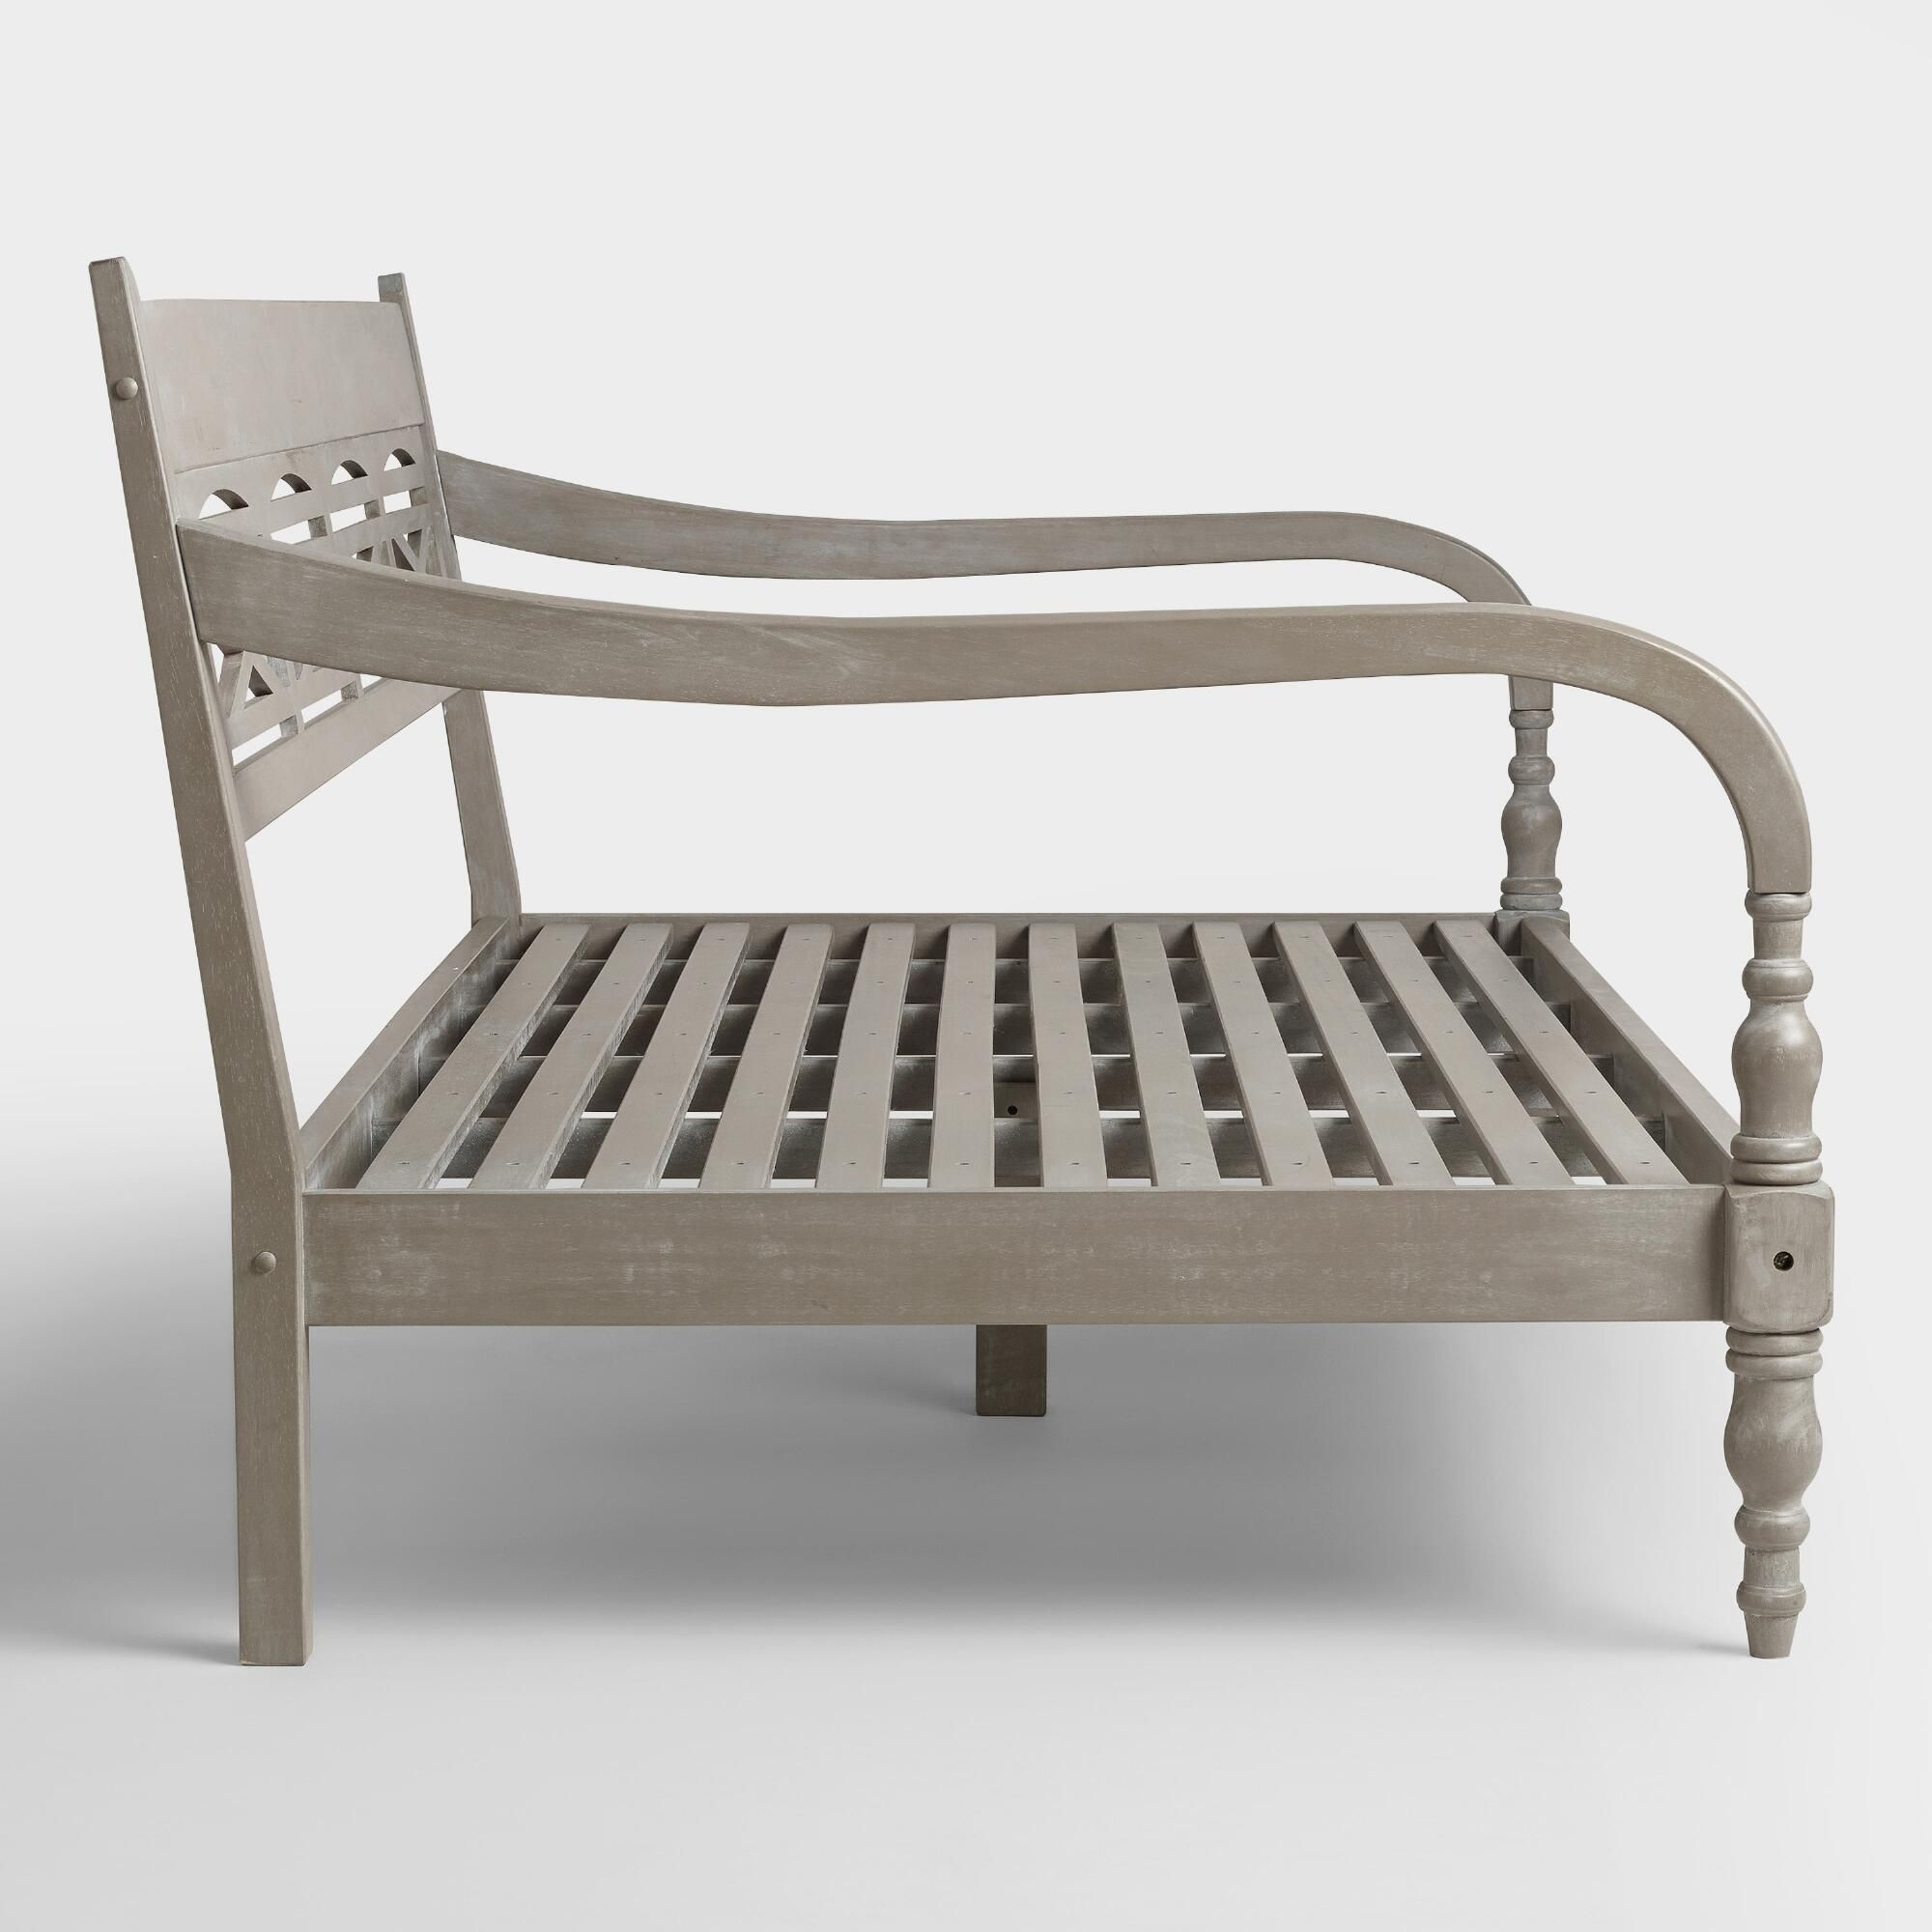 Living Room Translate To Indo: Indonesian Daybed Frame